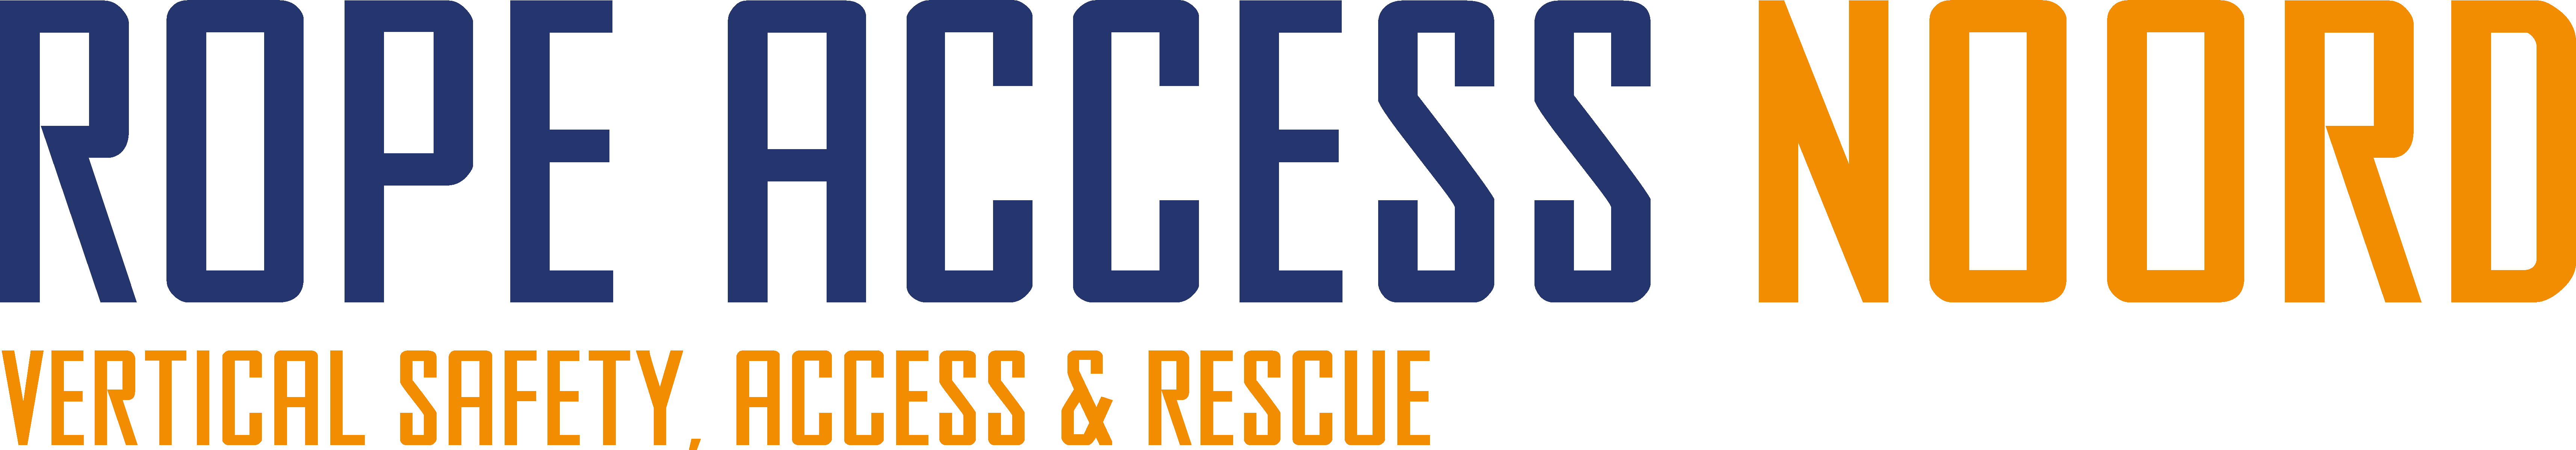 Rope Access Noord - logo